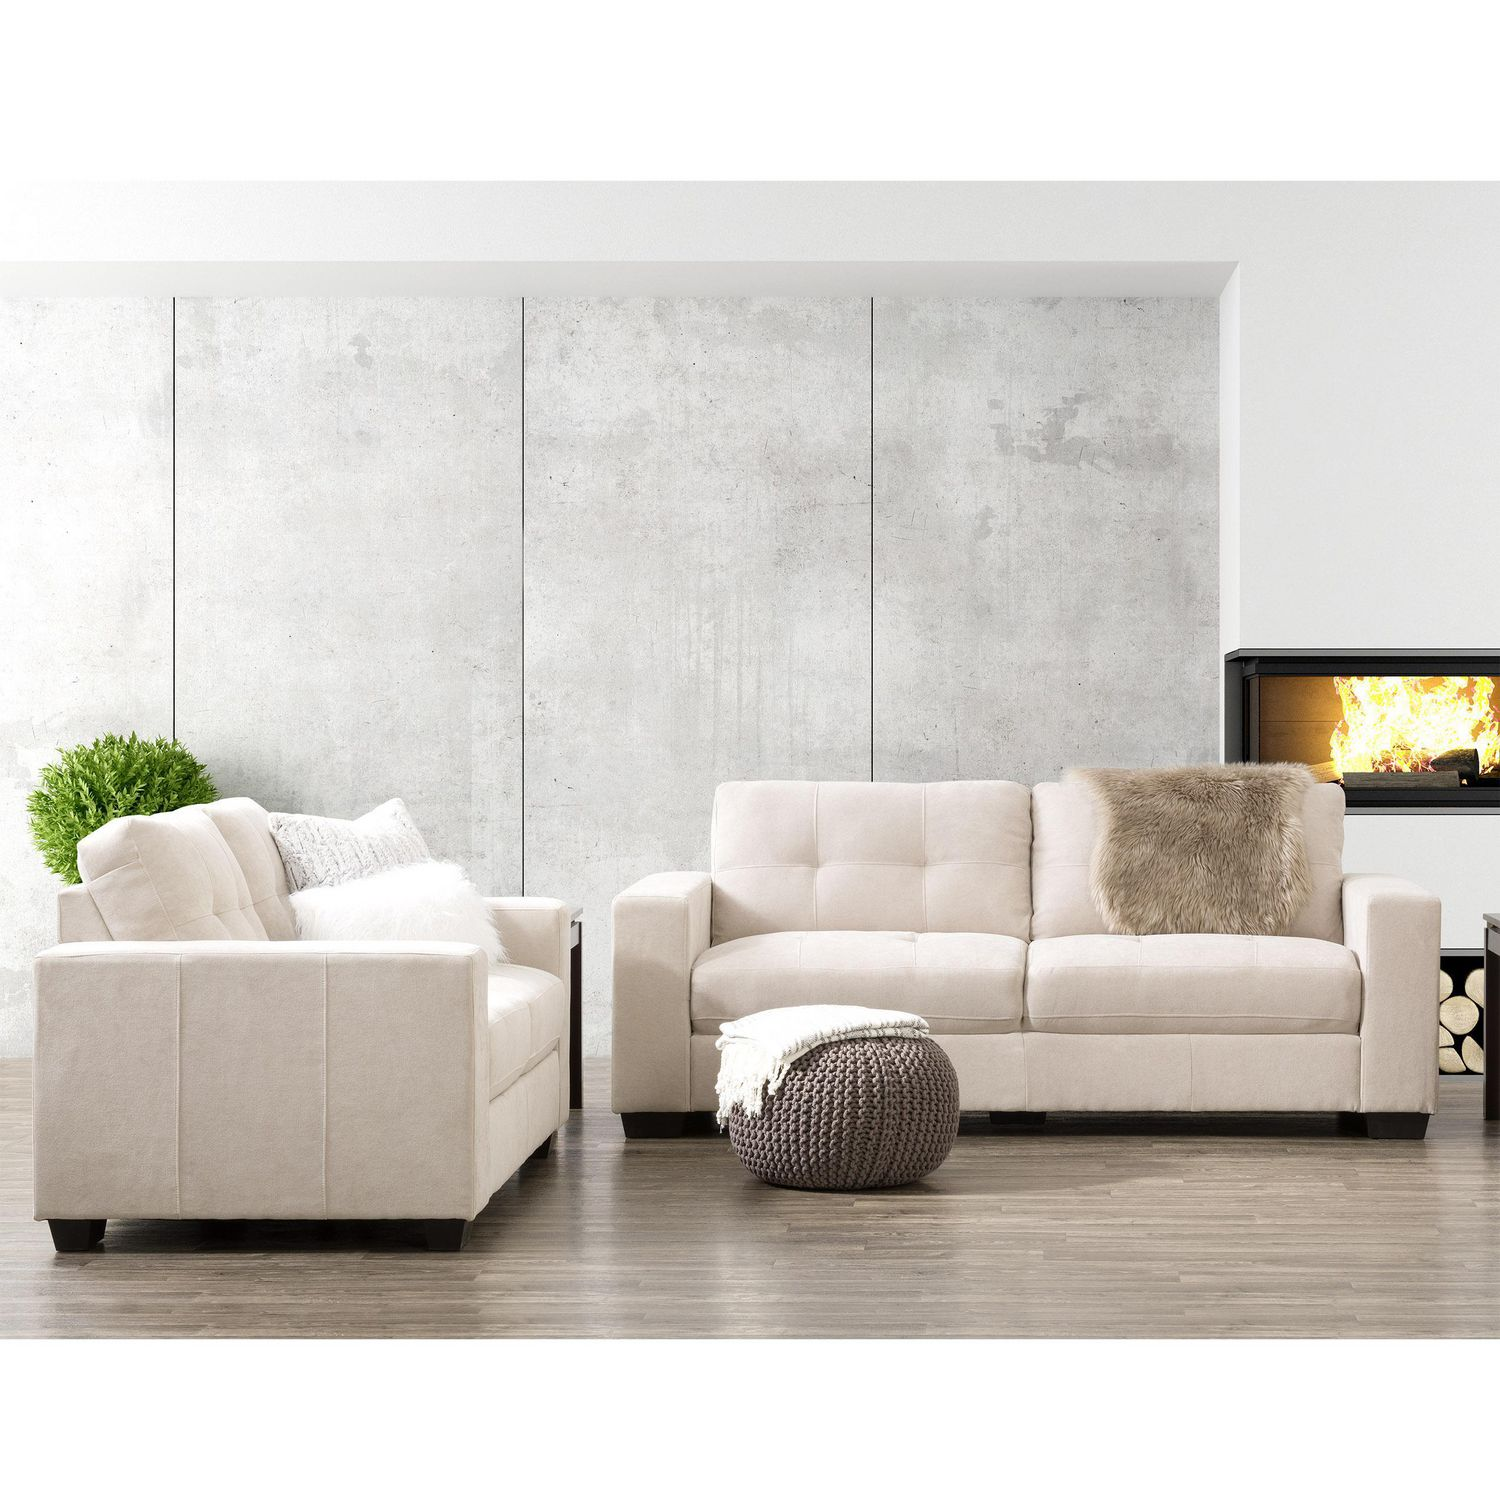 Corliving Club Tufted Beige Chenille Fabric Sofa Set